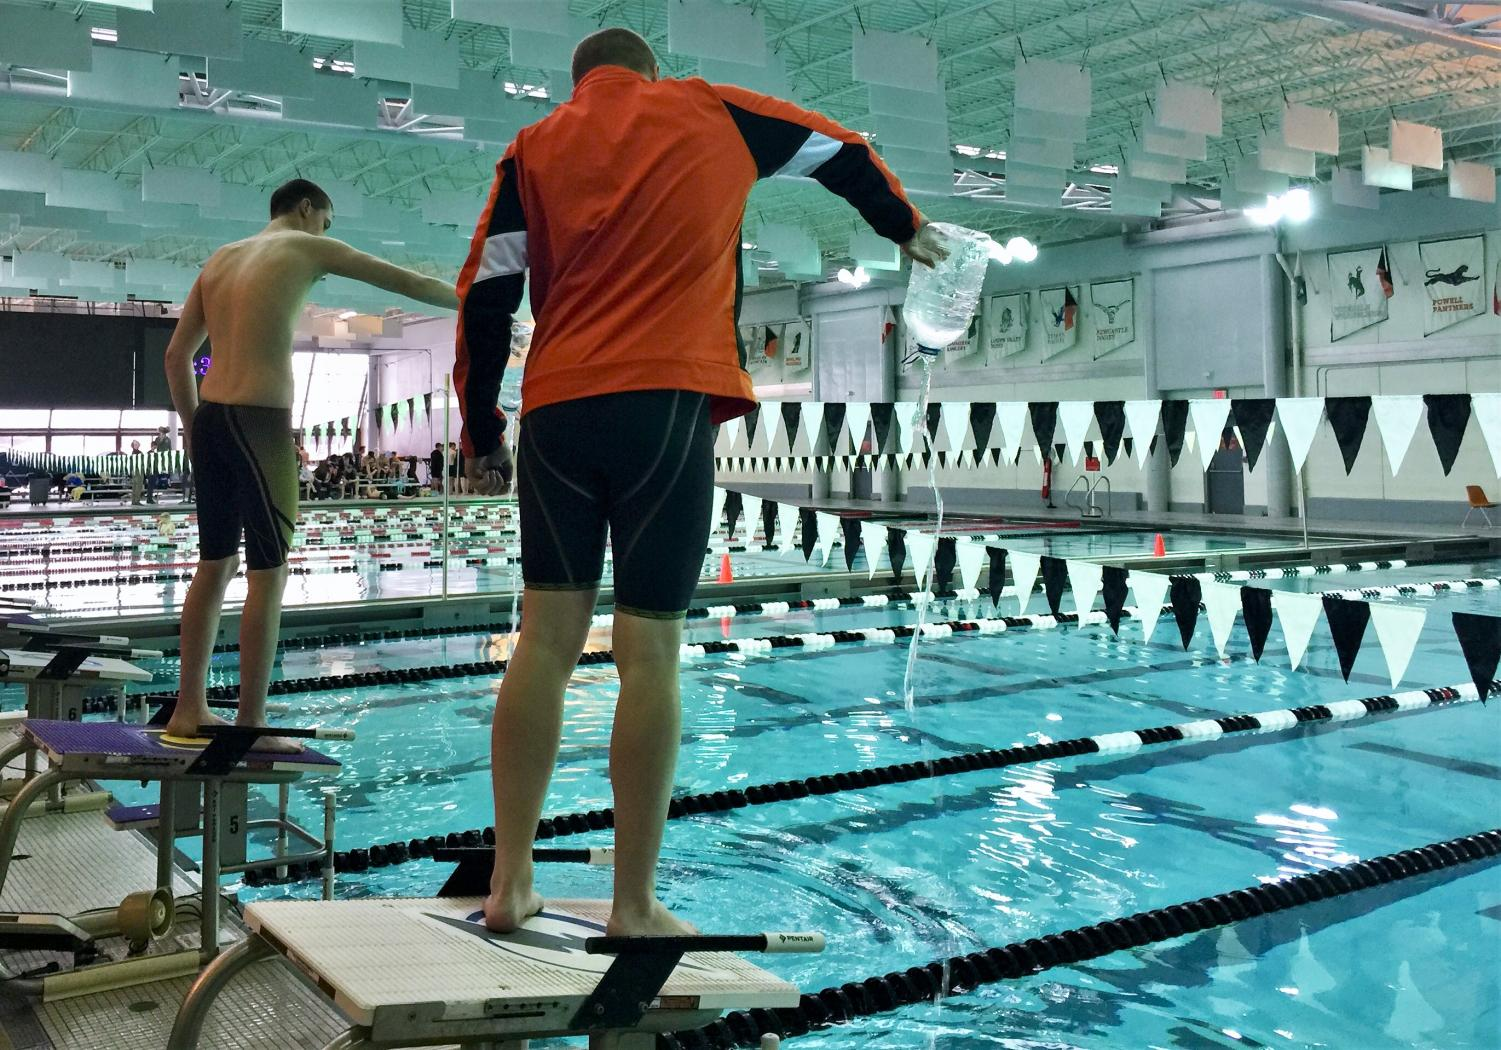 Seniors Joe Rogers (front) and Trenton Wilson pour the Powell Aquatic Center's pool water into Gillette's lanes, an ongoing tradition which takes place at the Wyoming State 3A Championships.